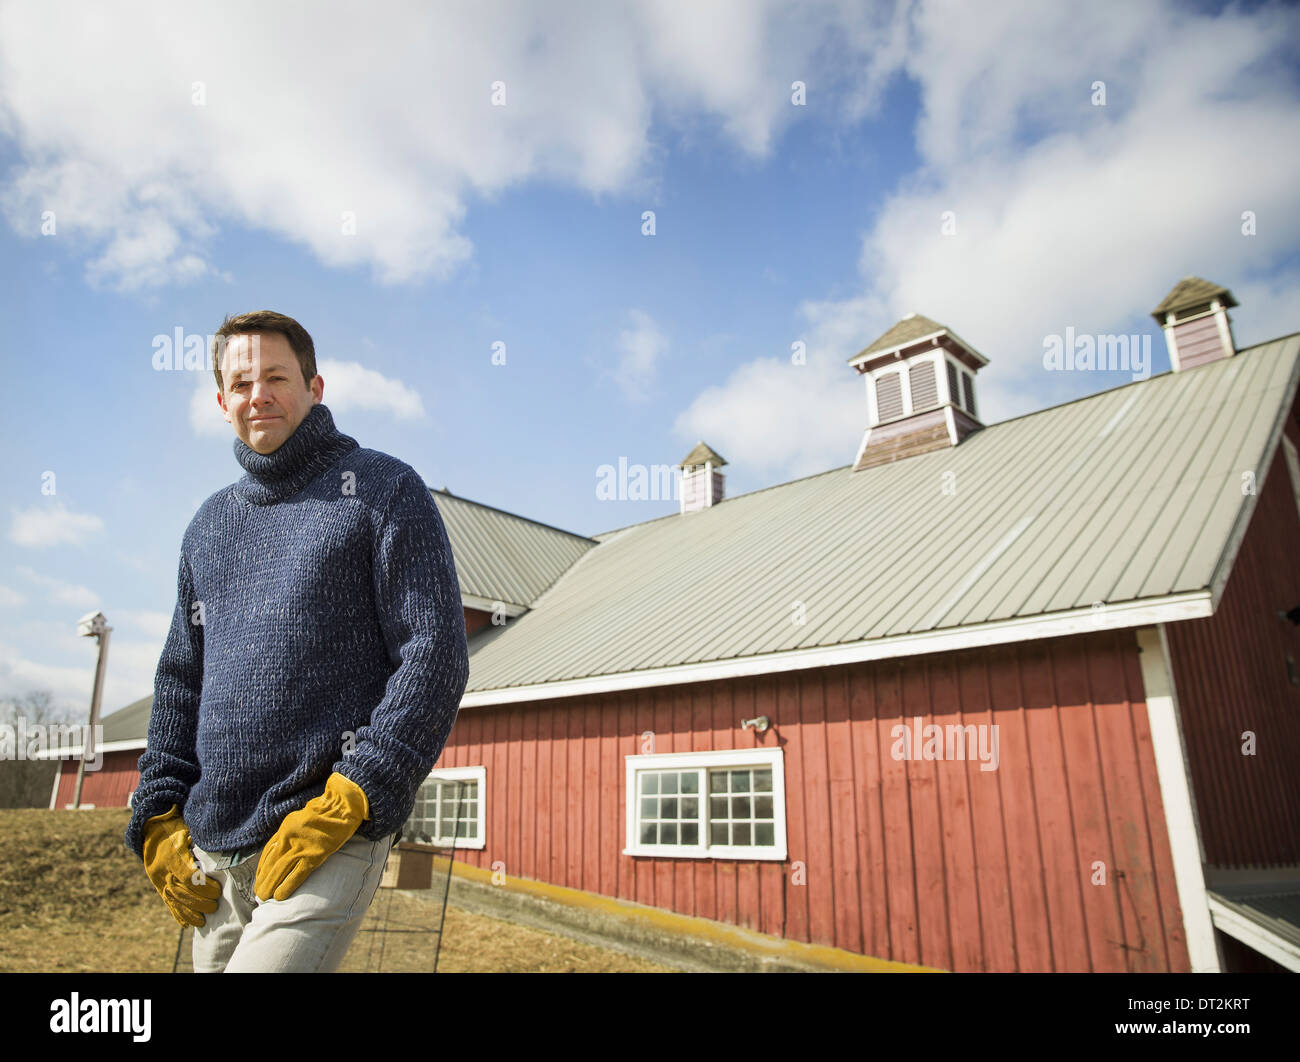 An Organic Farm in Winter in Cold Spring New York State A man working outdoors on the farm - Stock Image